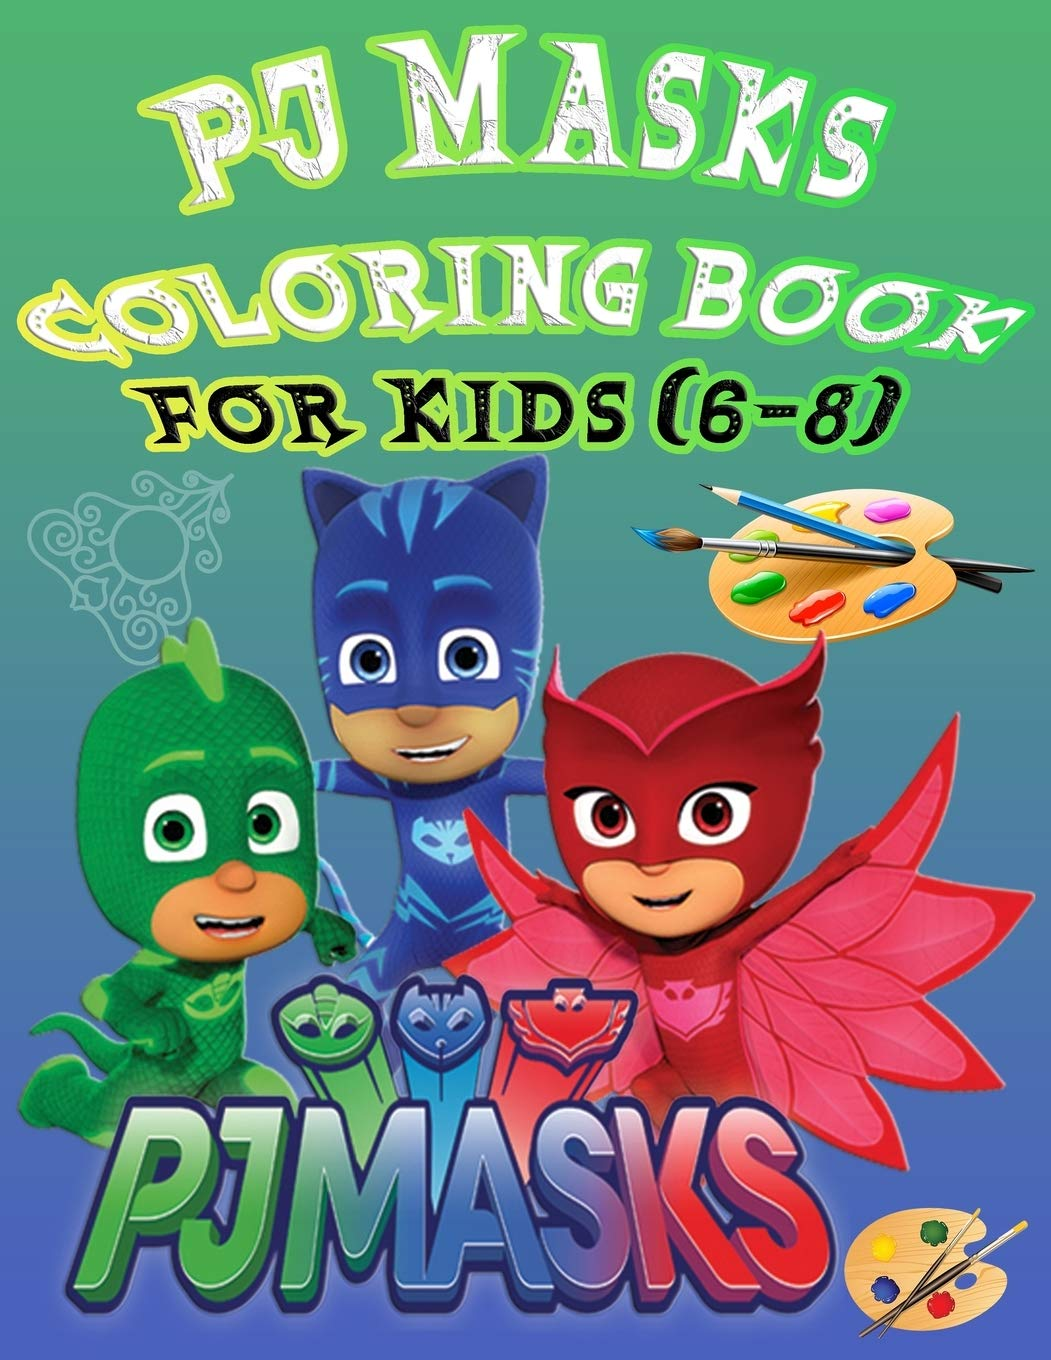 Buy Pj Mask Coloring Book For Kids 6 8 Great Coloring Book For Kids And Adults Pj Masks Toys Coloring And Activity Book Little Hero Pj Masks Book Online At Low